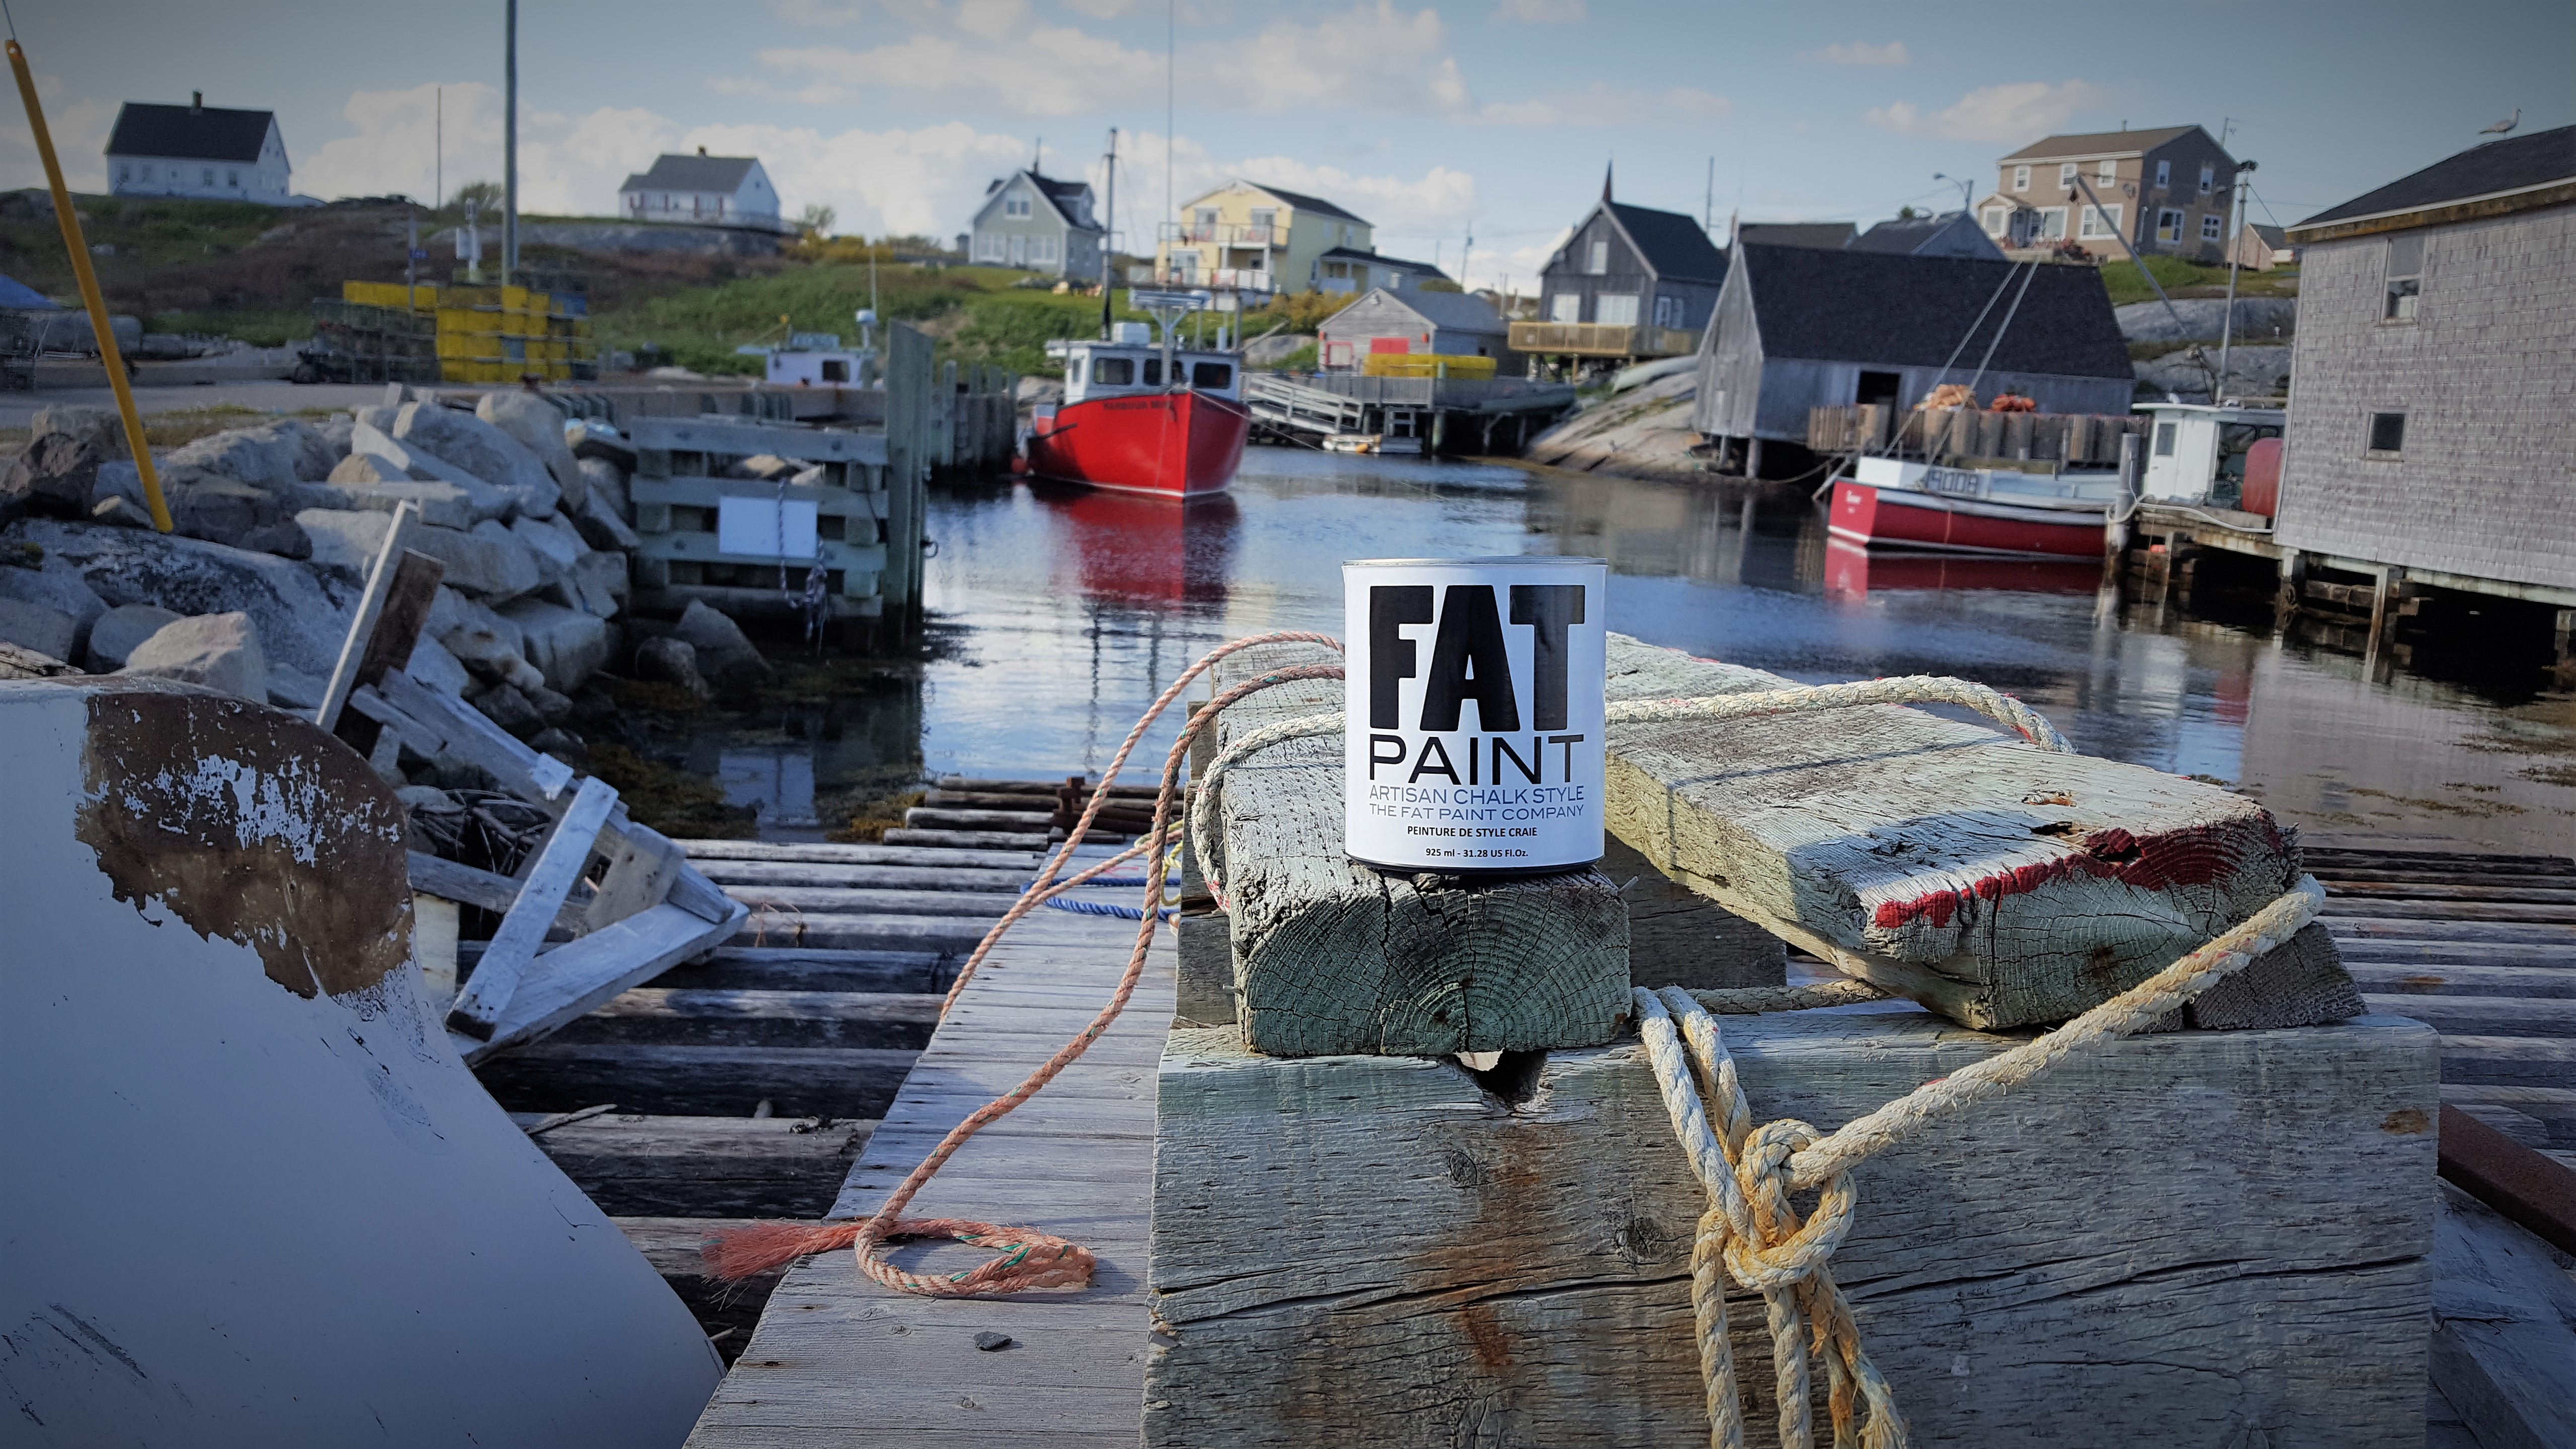 #FATwashere - Canny at the Docks